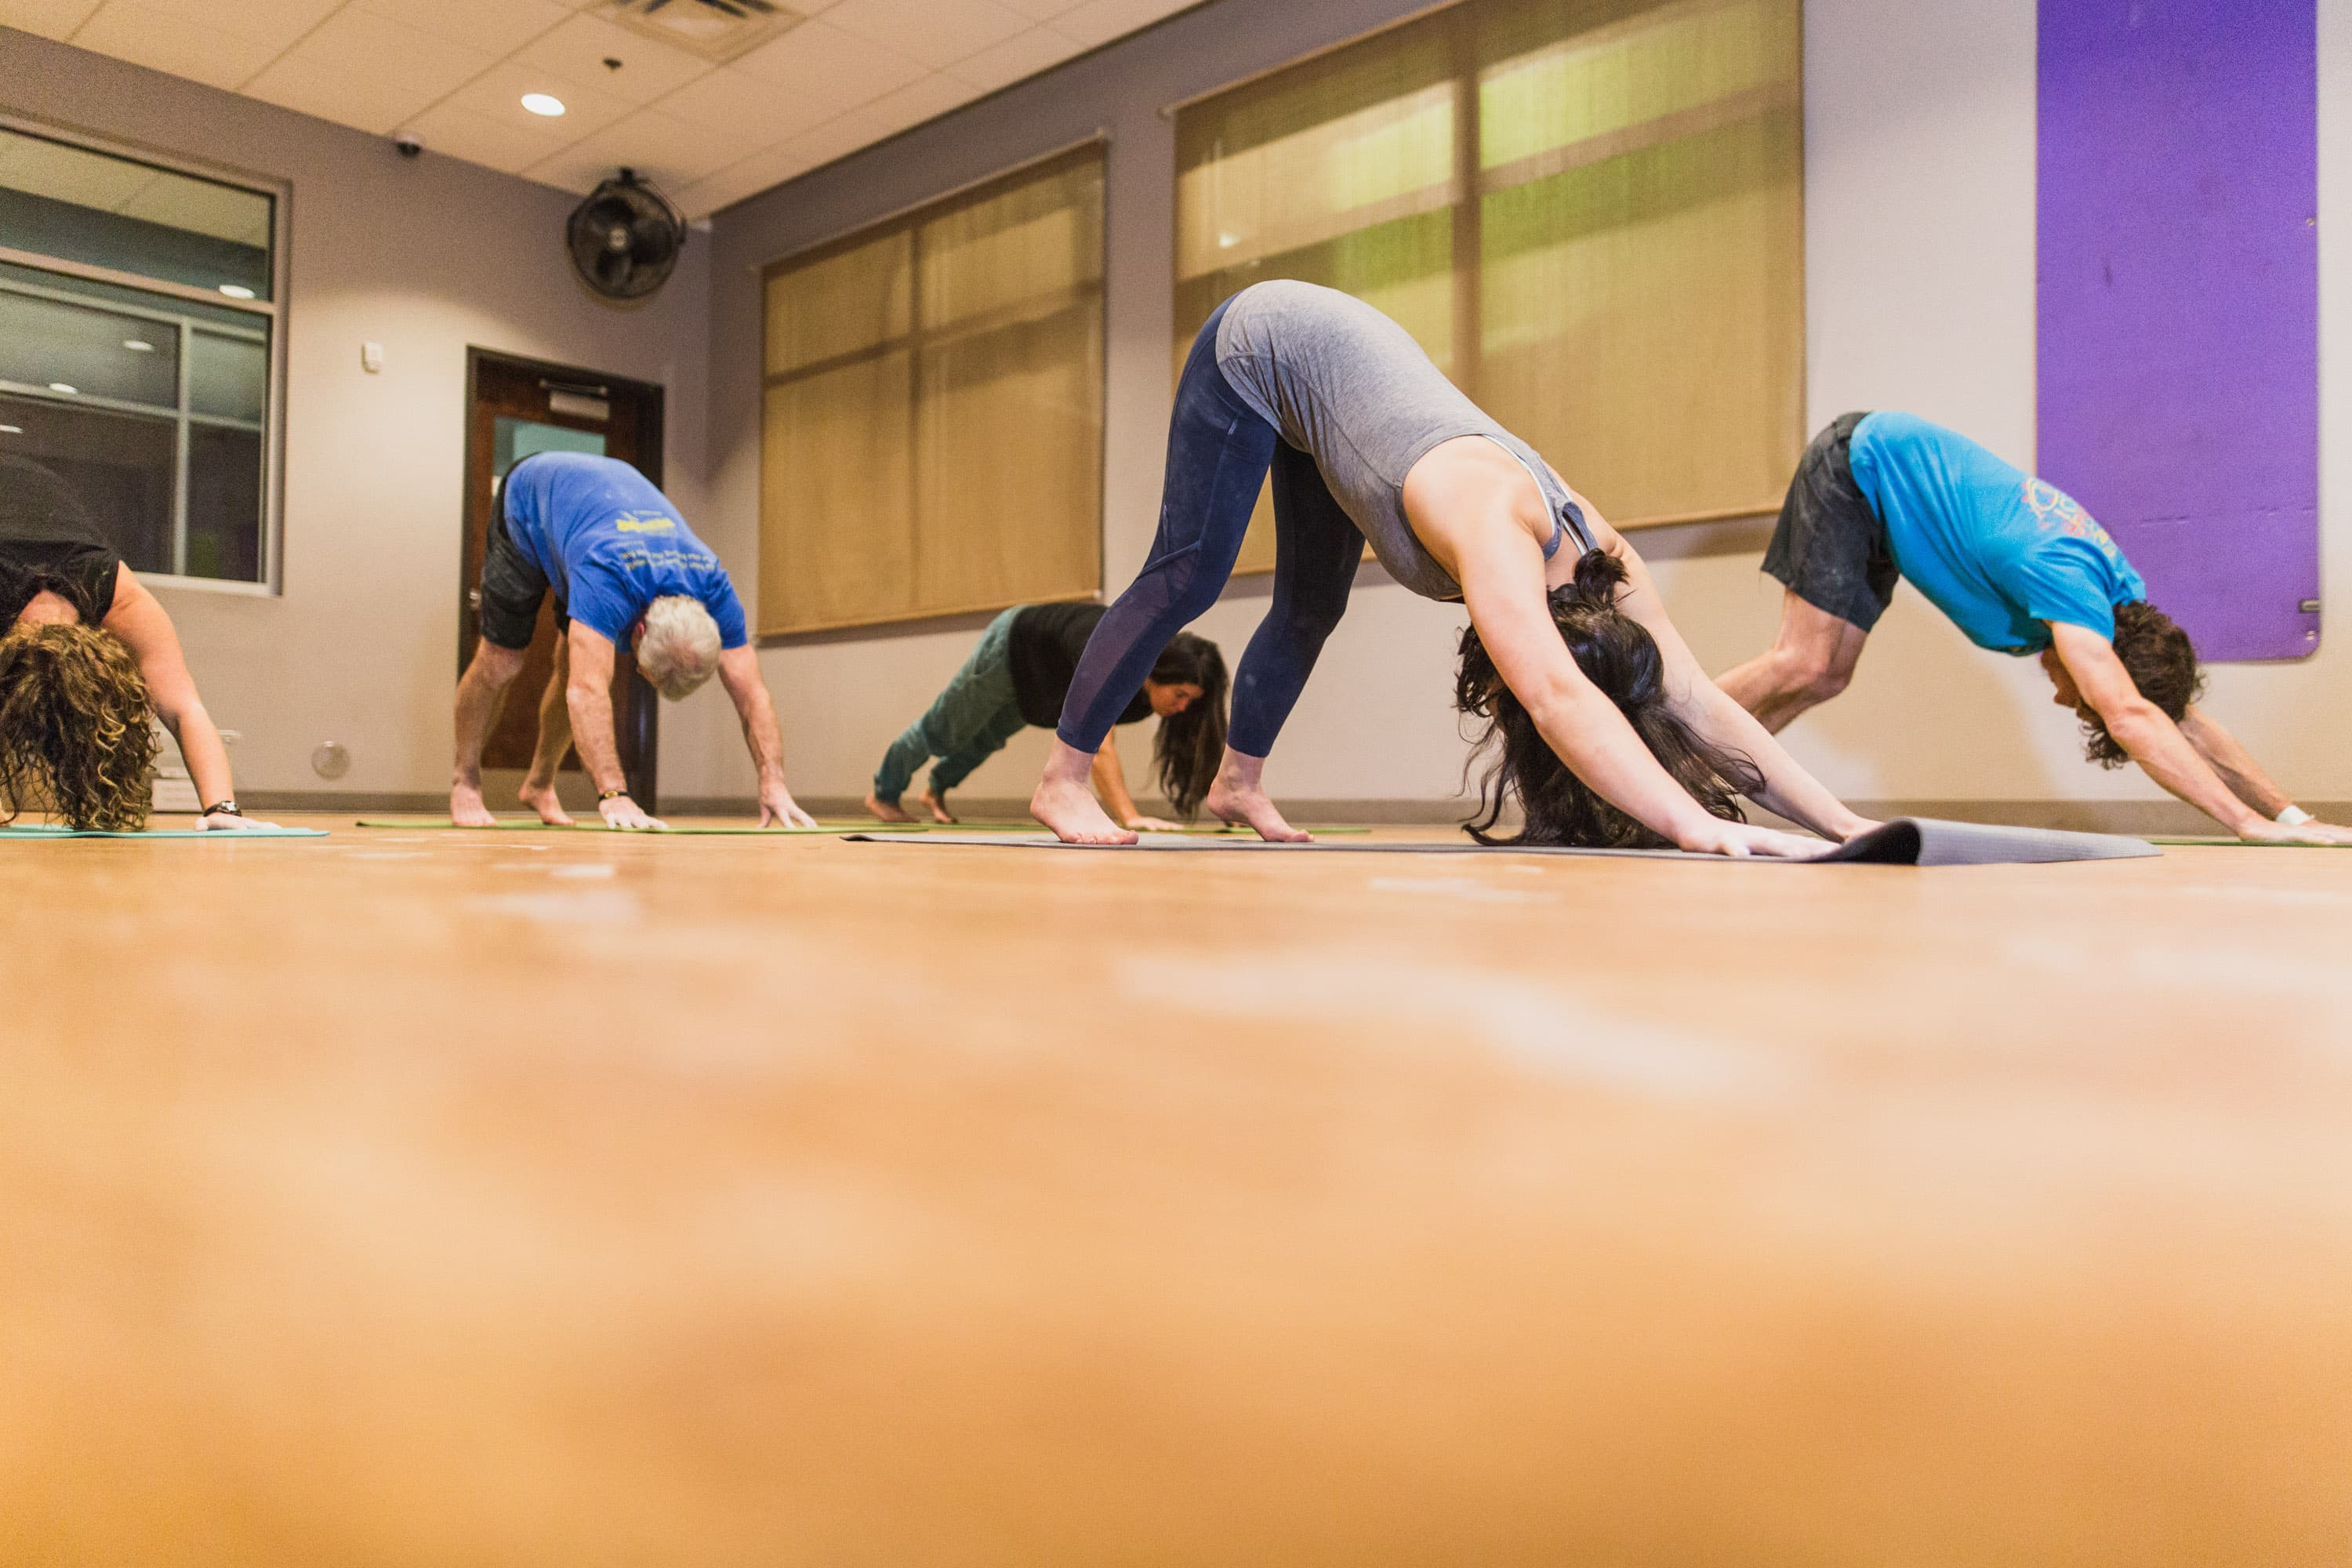 A group of women do yoga in an airy space.